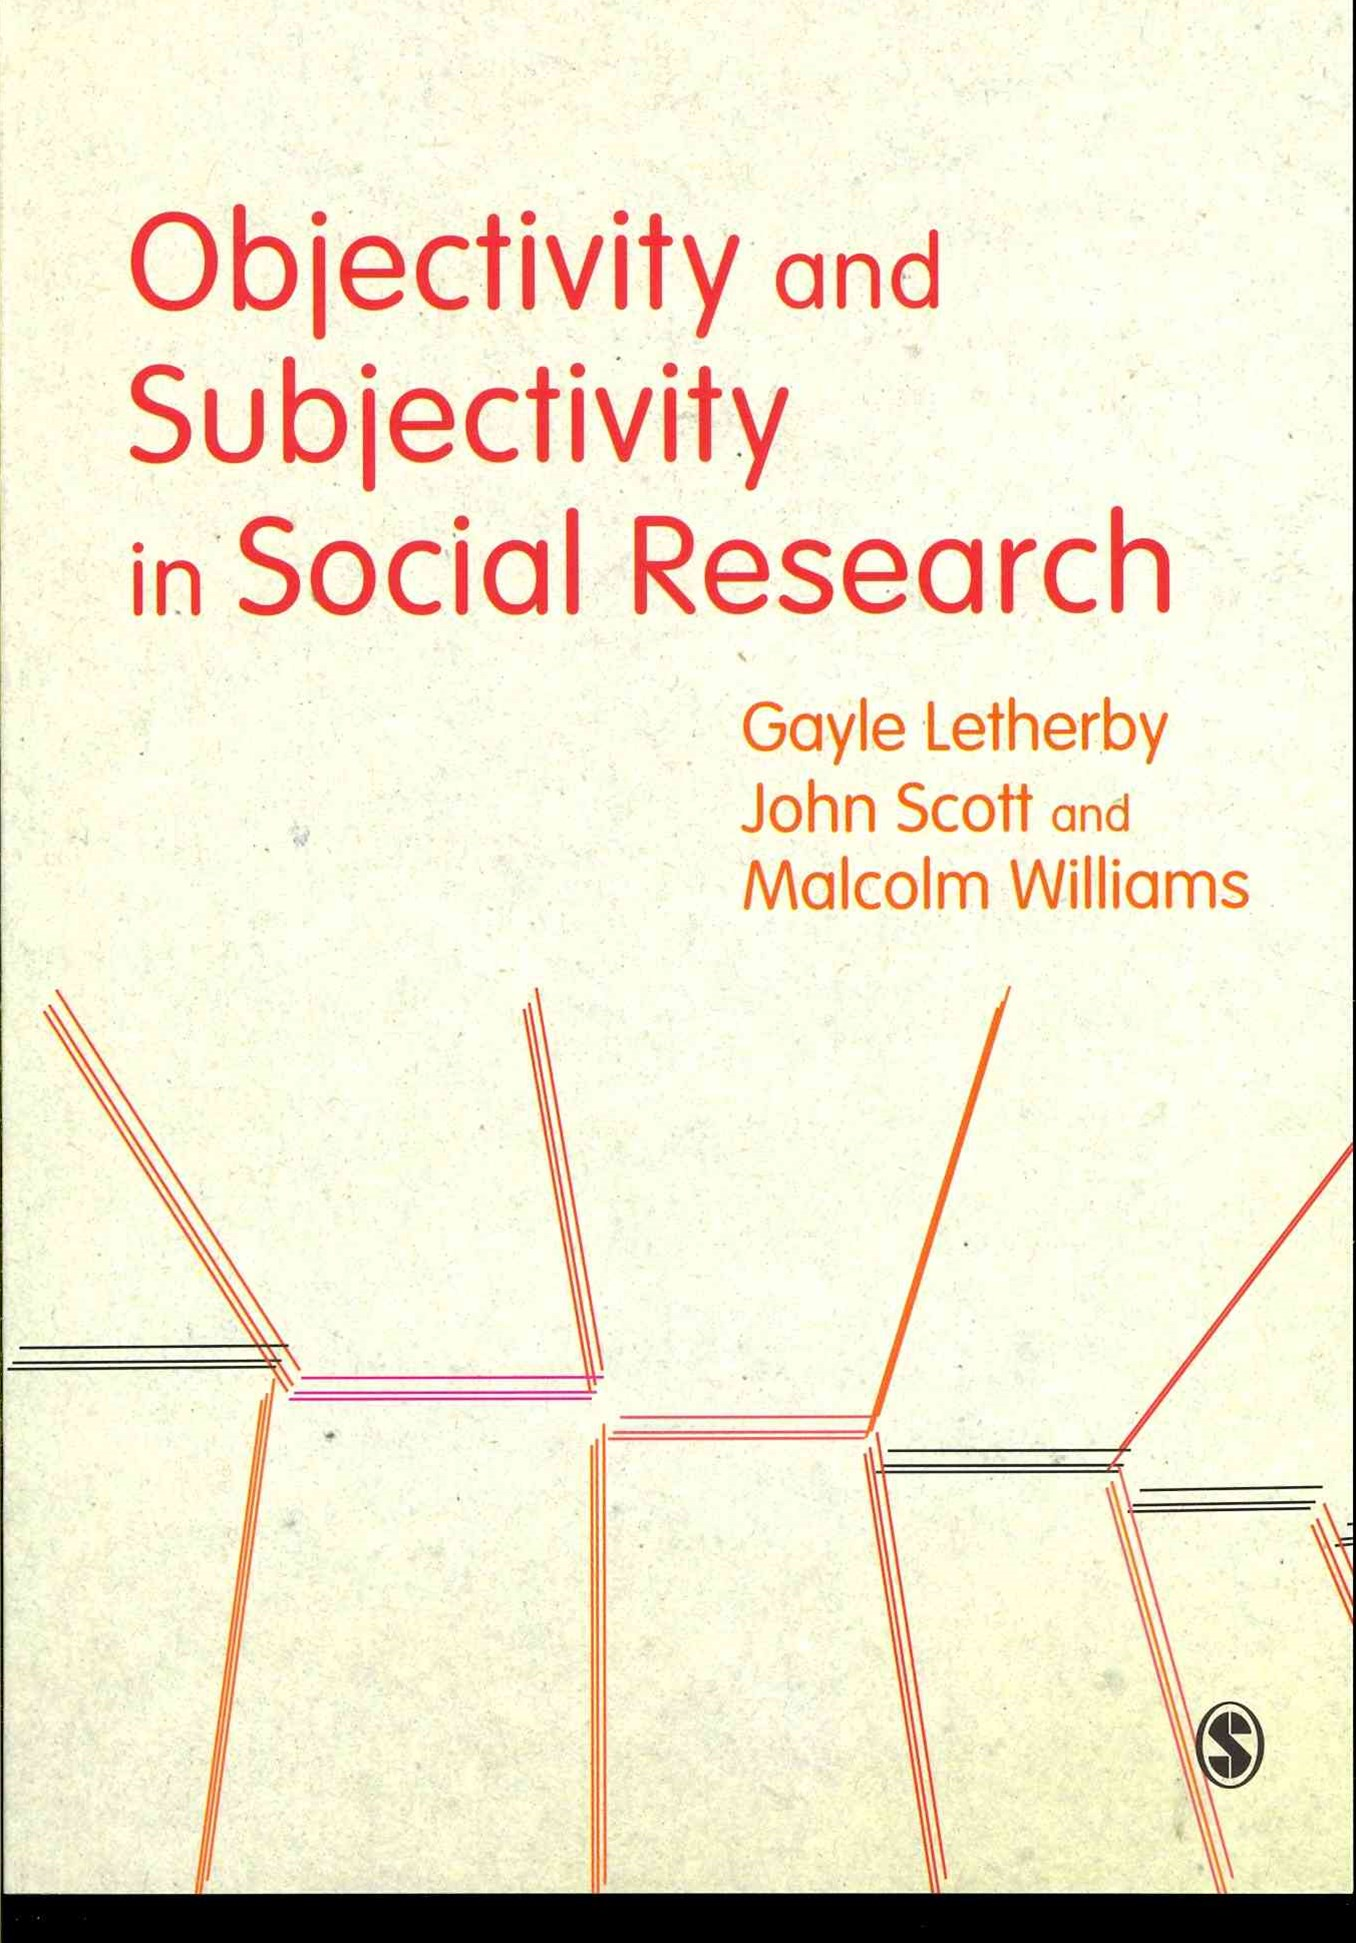 Objectivity and Subjectivity in Social Research